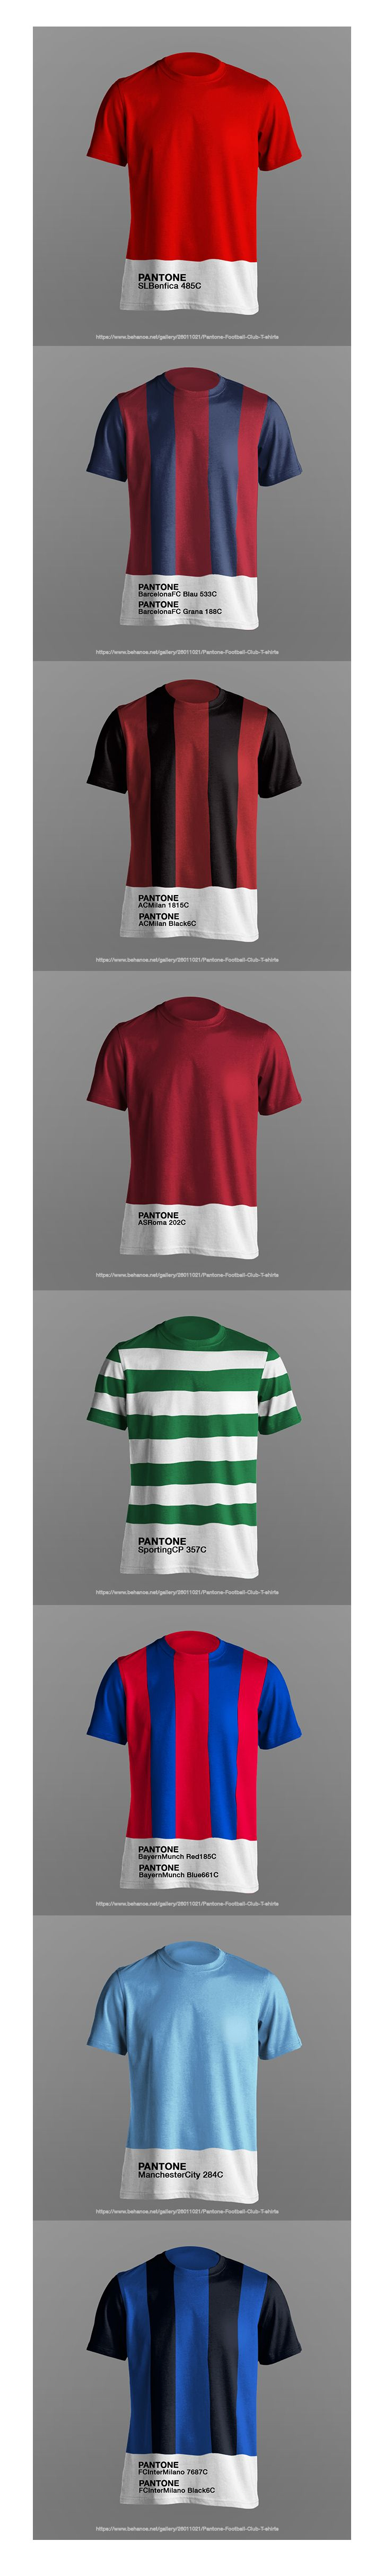 Imagine if Pantone Color Brand could make the new football club t-shirt.  #Football #Soccer #Barcelona #BayernMunch #Benfica #Pantone #pantonecolors #color #colours #messi #robben